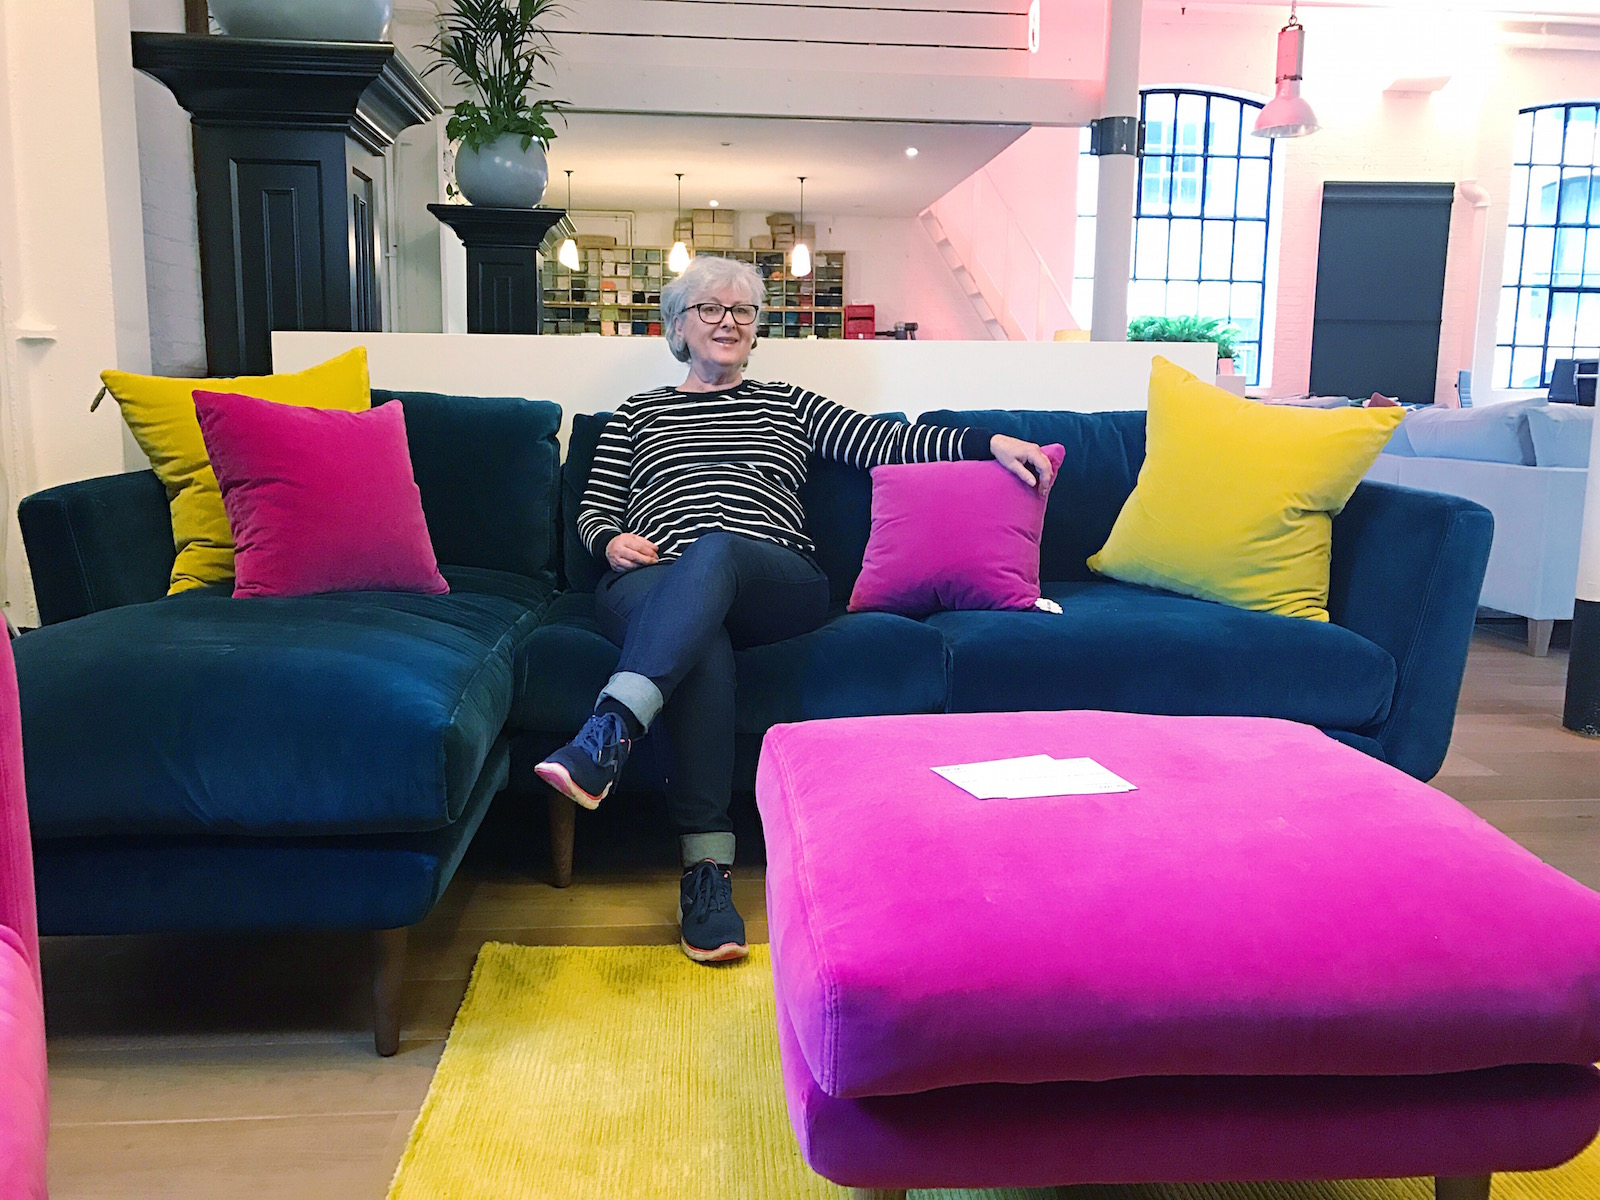 Beau When Buying A New Sofa Itu0027s Essential That You Try Before You Buy. Hereu0027s  Mum Road Testing In The Sofa.com Chelsea Showroom